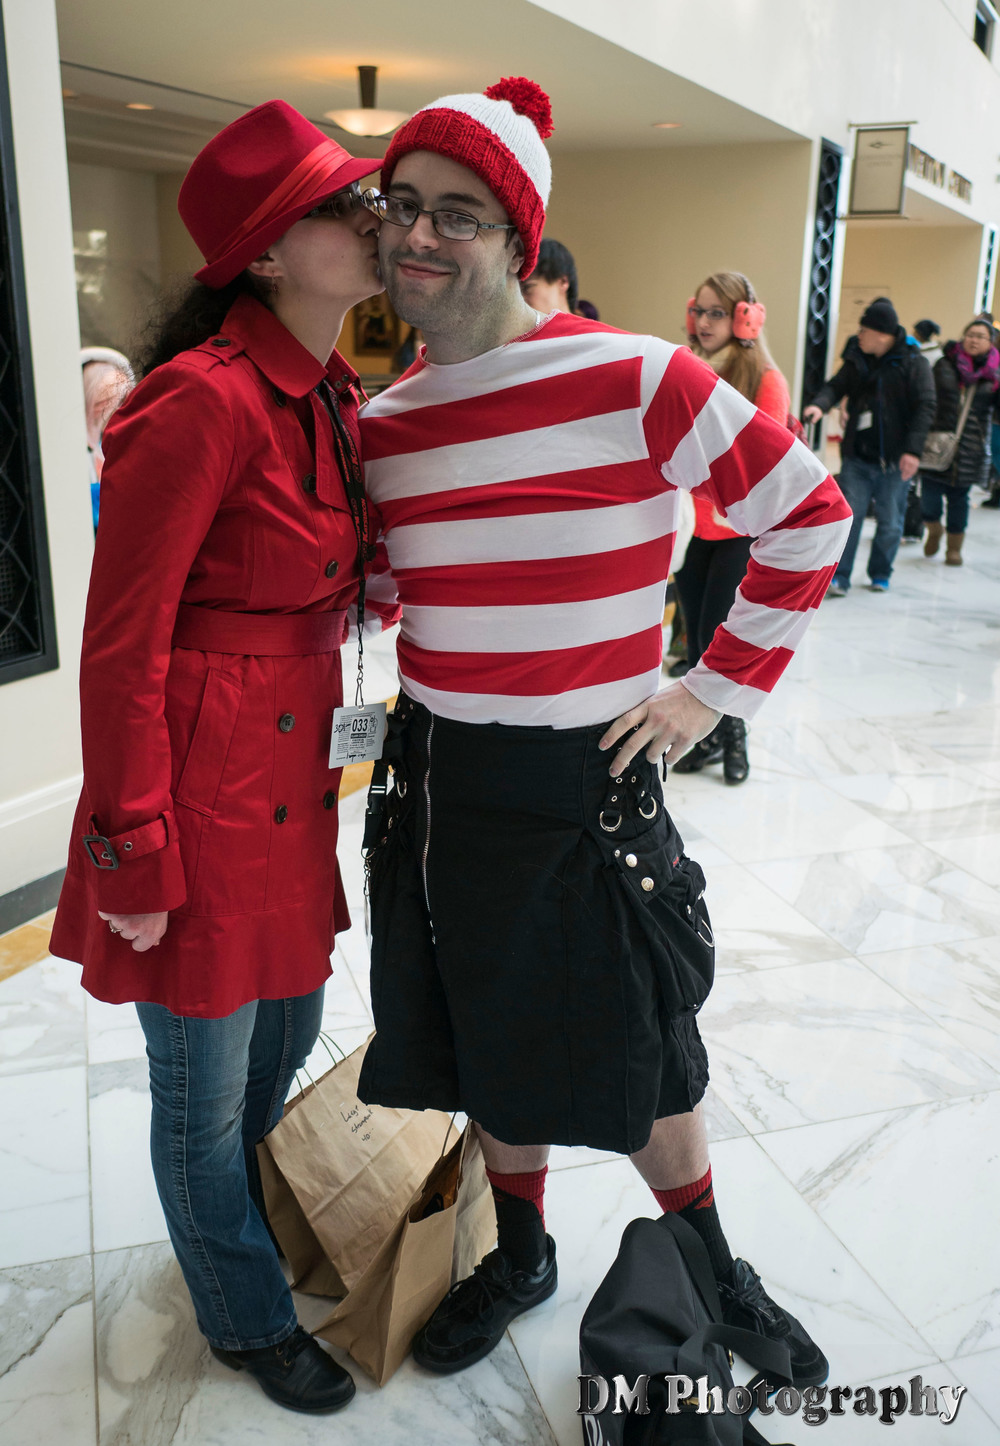 Carmen Sandiego and Waldo